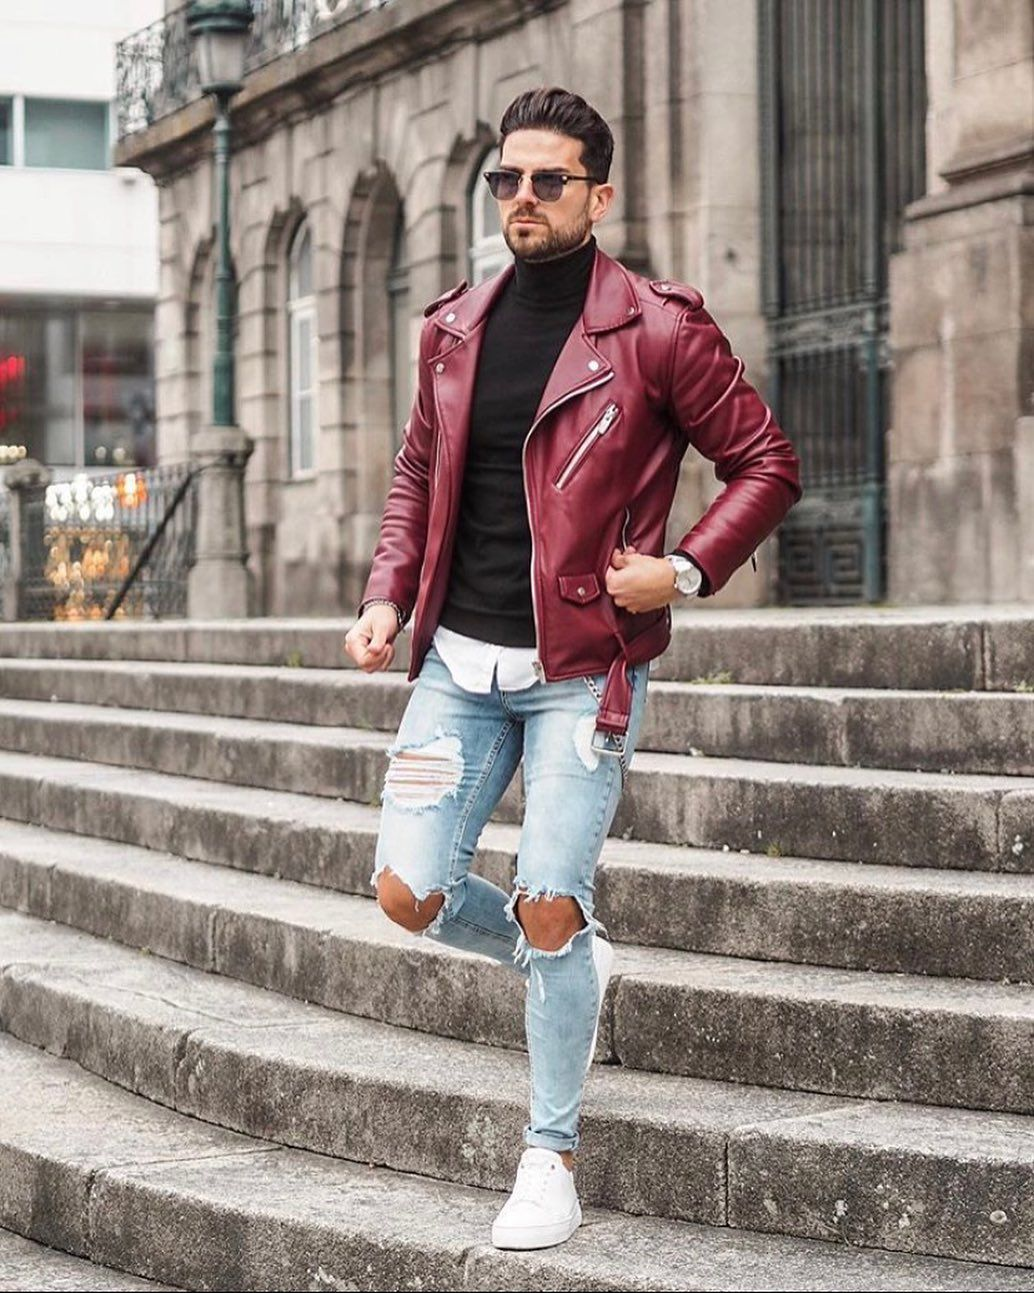 Weekend Outfit What Do You Think About The Burgundy Leather Jacket Leather Jacket Outfit Men Leather Jacket Men Burgundy Jacket Outfit [ 1293 x 1034 Pixel ]